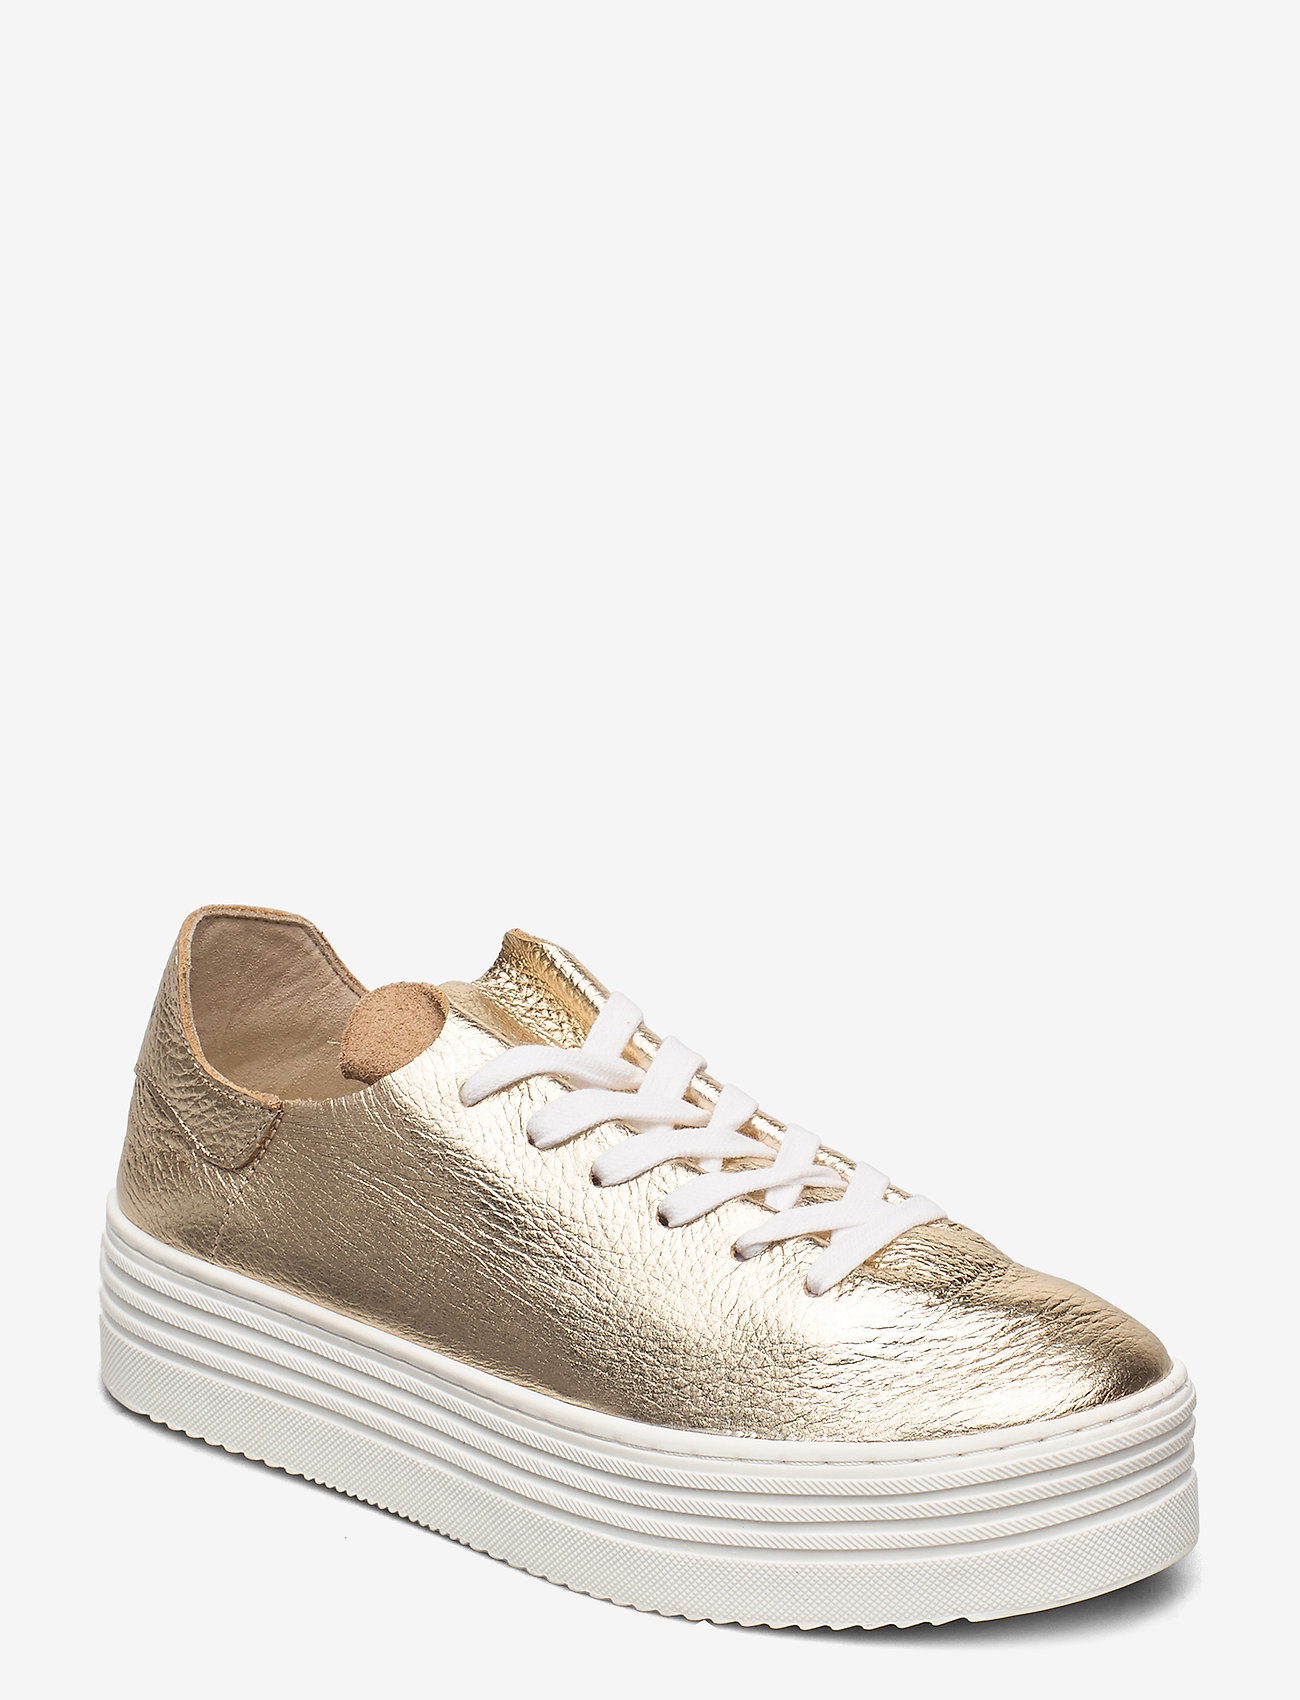 Sam Edelman - PIPPY TUMBLED MET LEATHER - lage sneakers - molten gold - 0